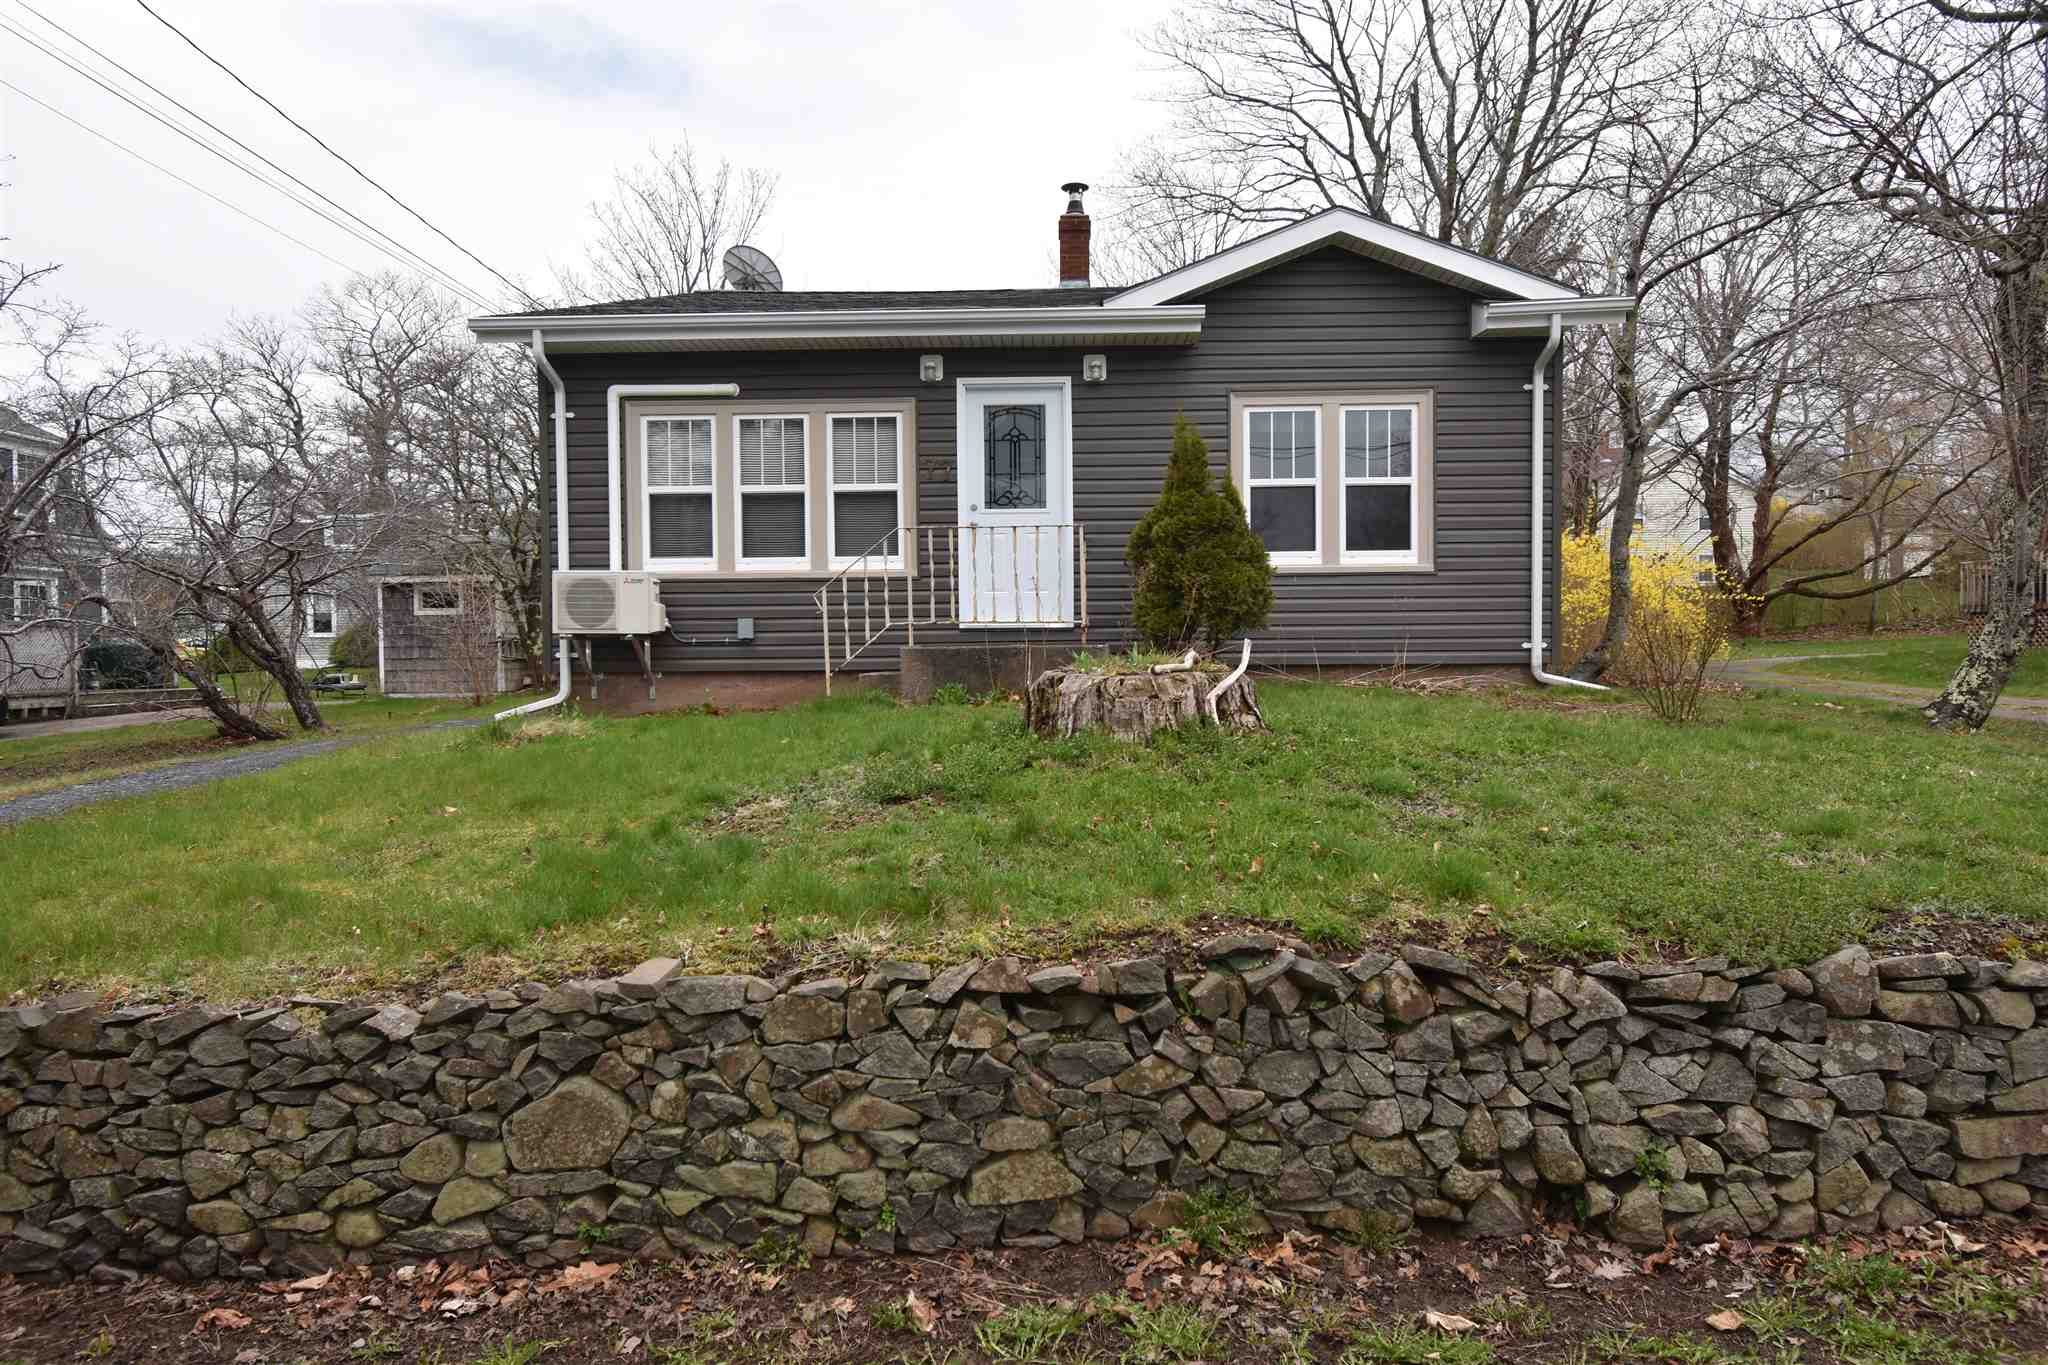 Main Photo: 77 SECOND Avenue in Digby: 401-Digby County Residential for sale (Annapolis Valley)  : MLS®# 202110004